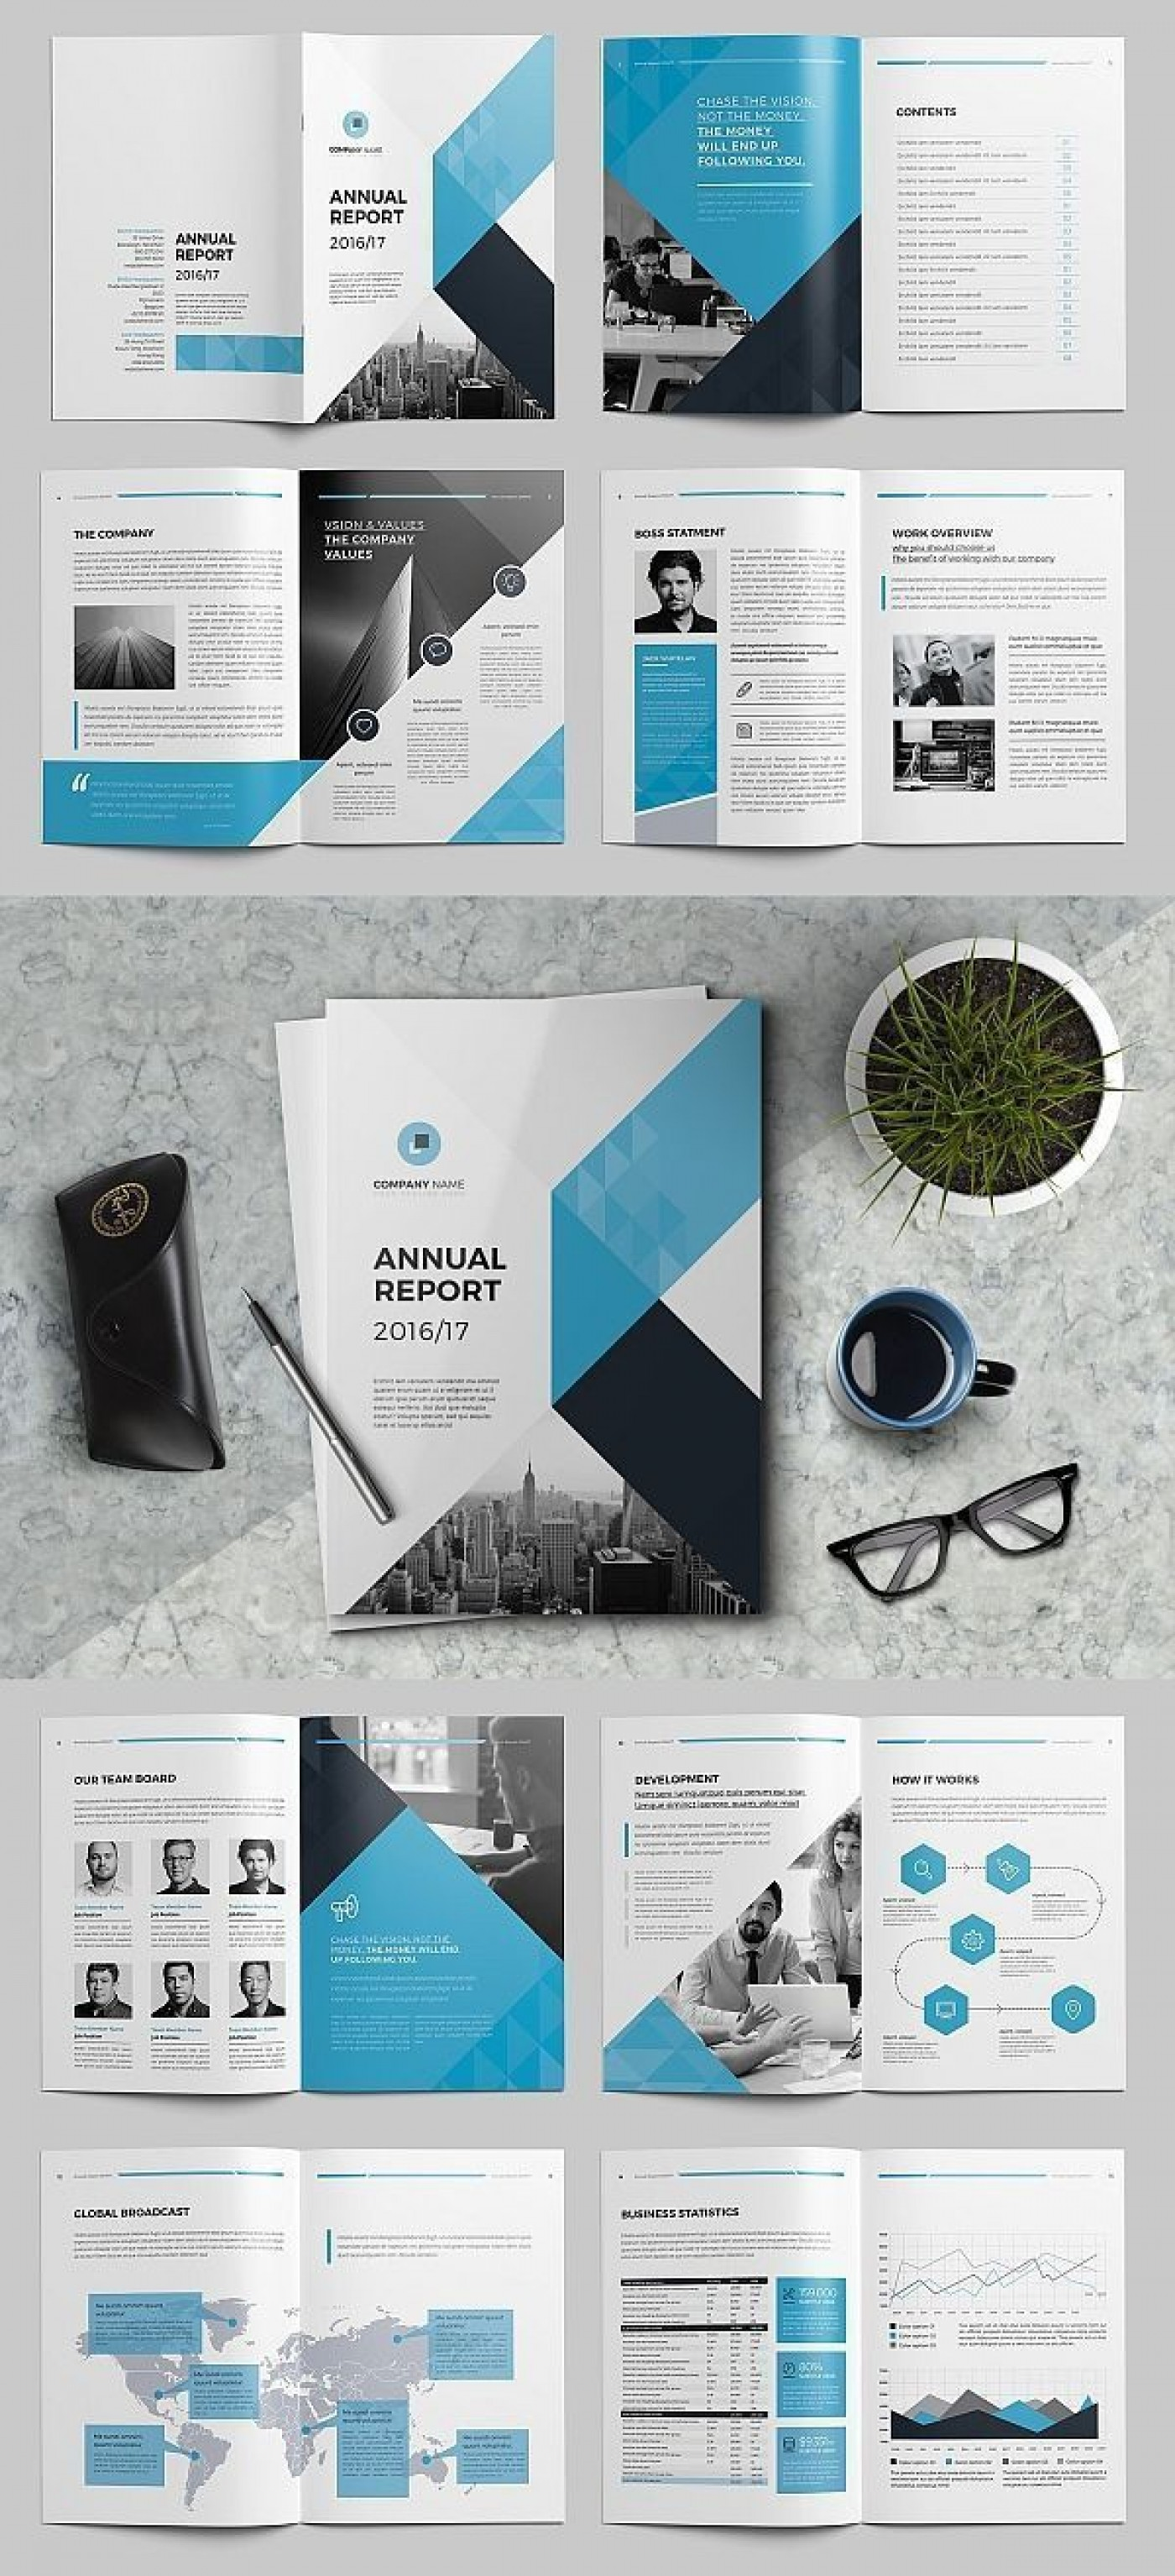 001 Incredible Free Annual Report Template Indesign Image  Adobe Non Profit1400